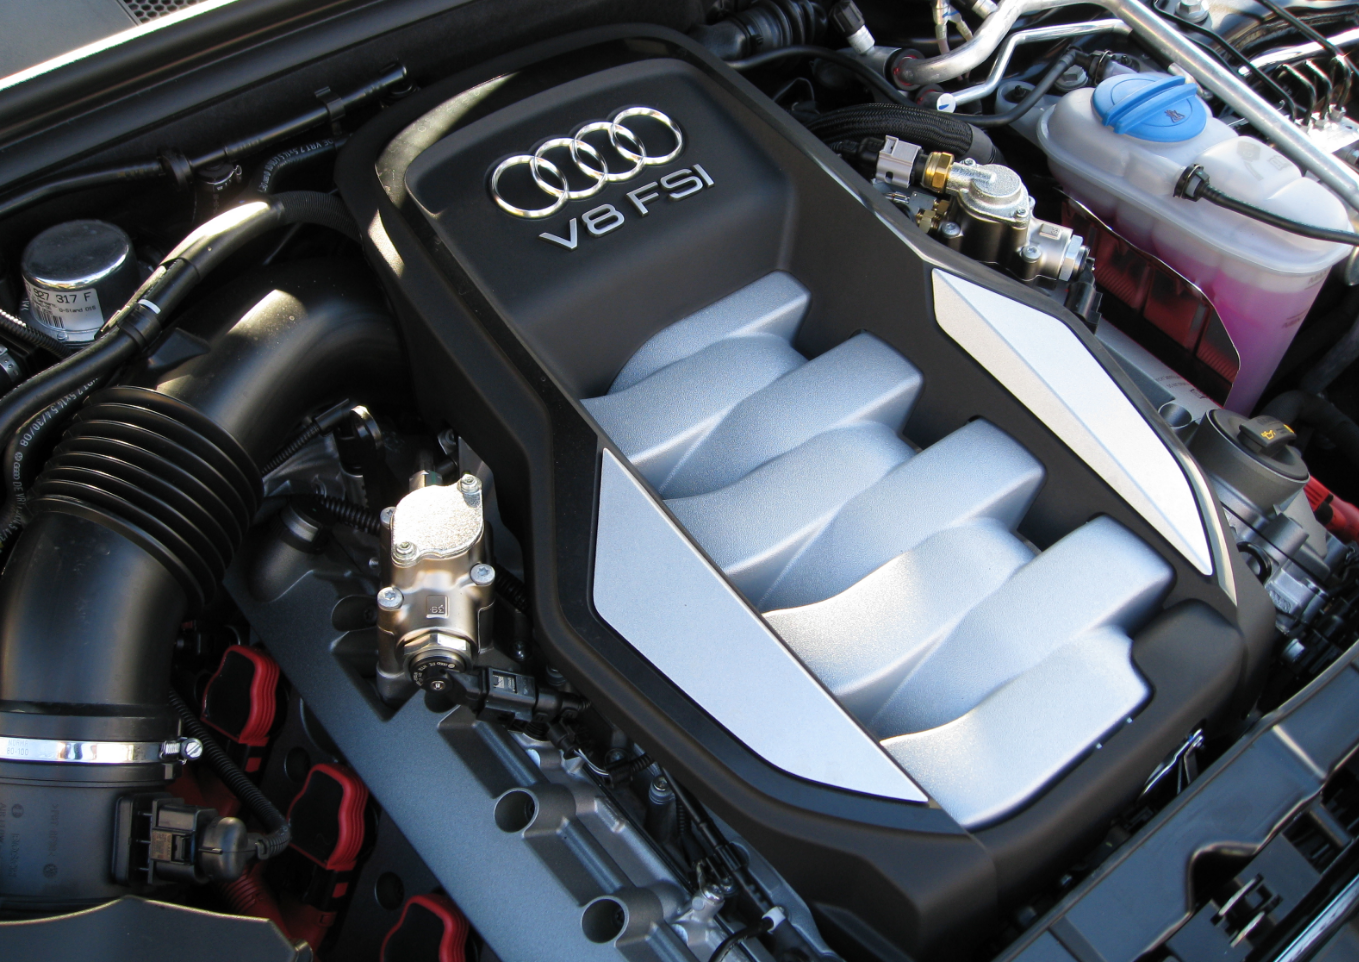 what does the future hold for the audi v8 engine? industry tap Audi S6 V8 4.2 Engine Audi V8 Engine #1